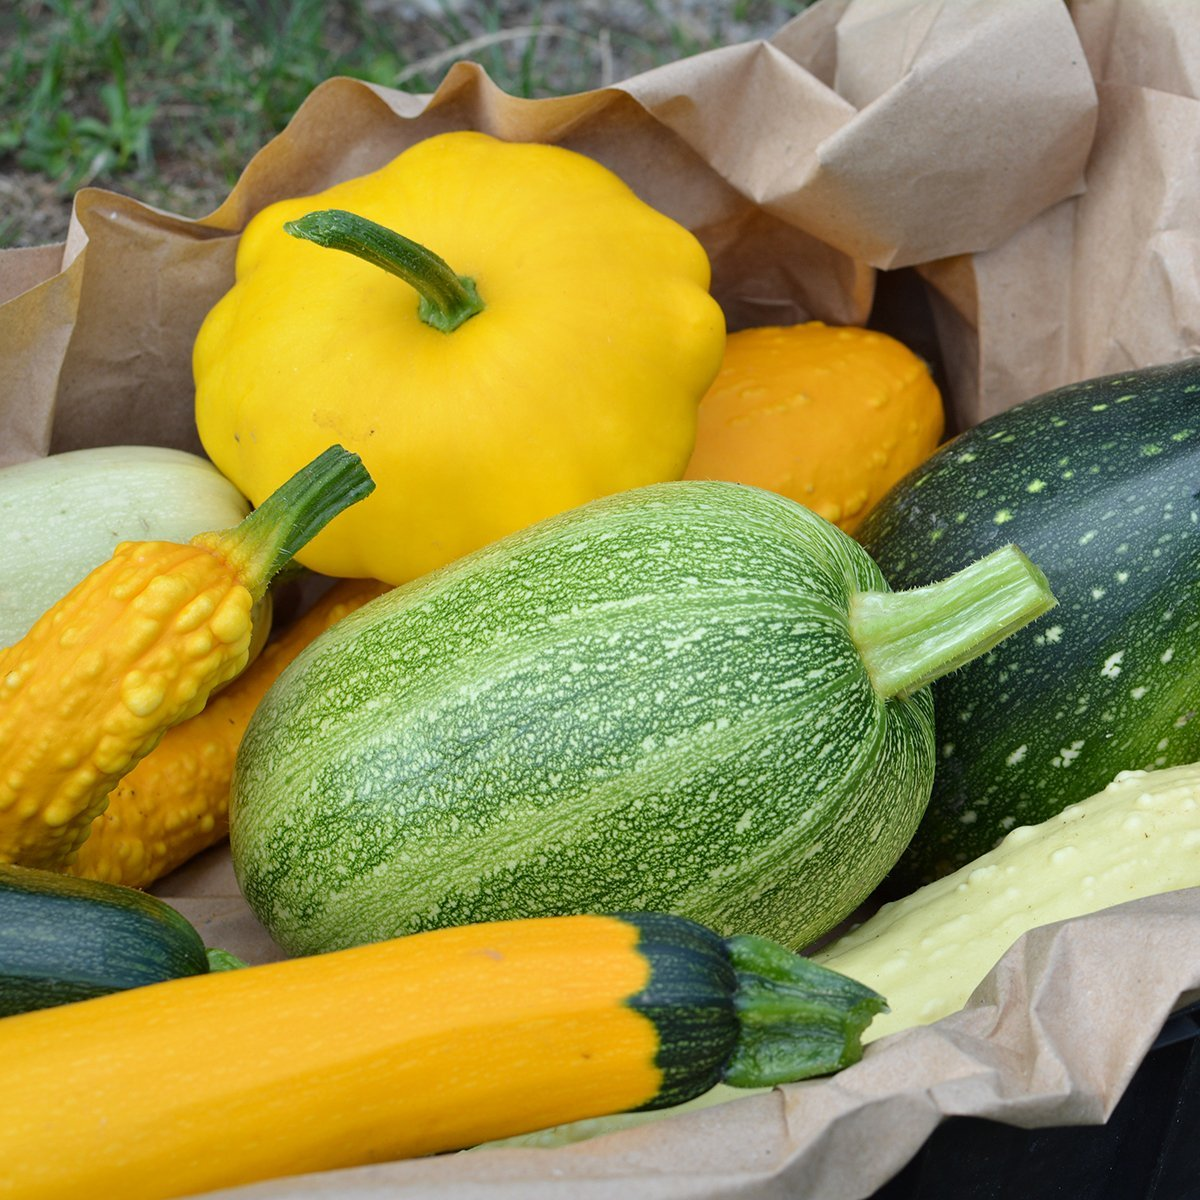 #GreenLiving is back from #Summer break, and #AlexArcher will be talking about #SummerSquash!  #EatHealthy  #LiveHealthy  #BeHealthy  #EatRealFood  #EatGoodFood  #HellNoGMO  #NoFrankenfoods #NonGMO https://t.co/W31Pagnll4